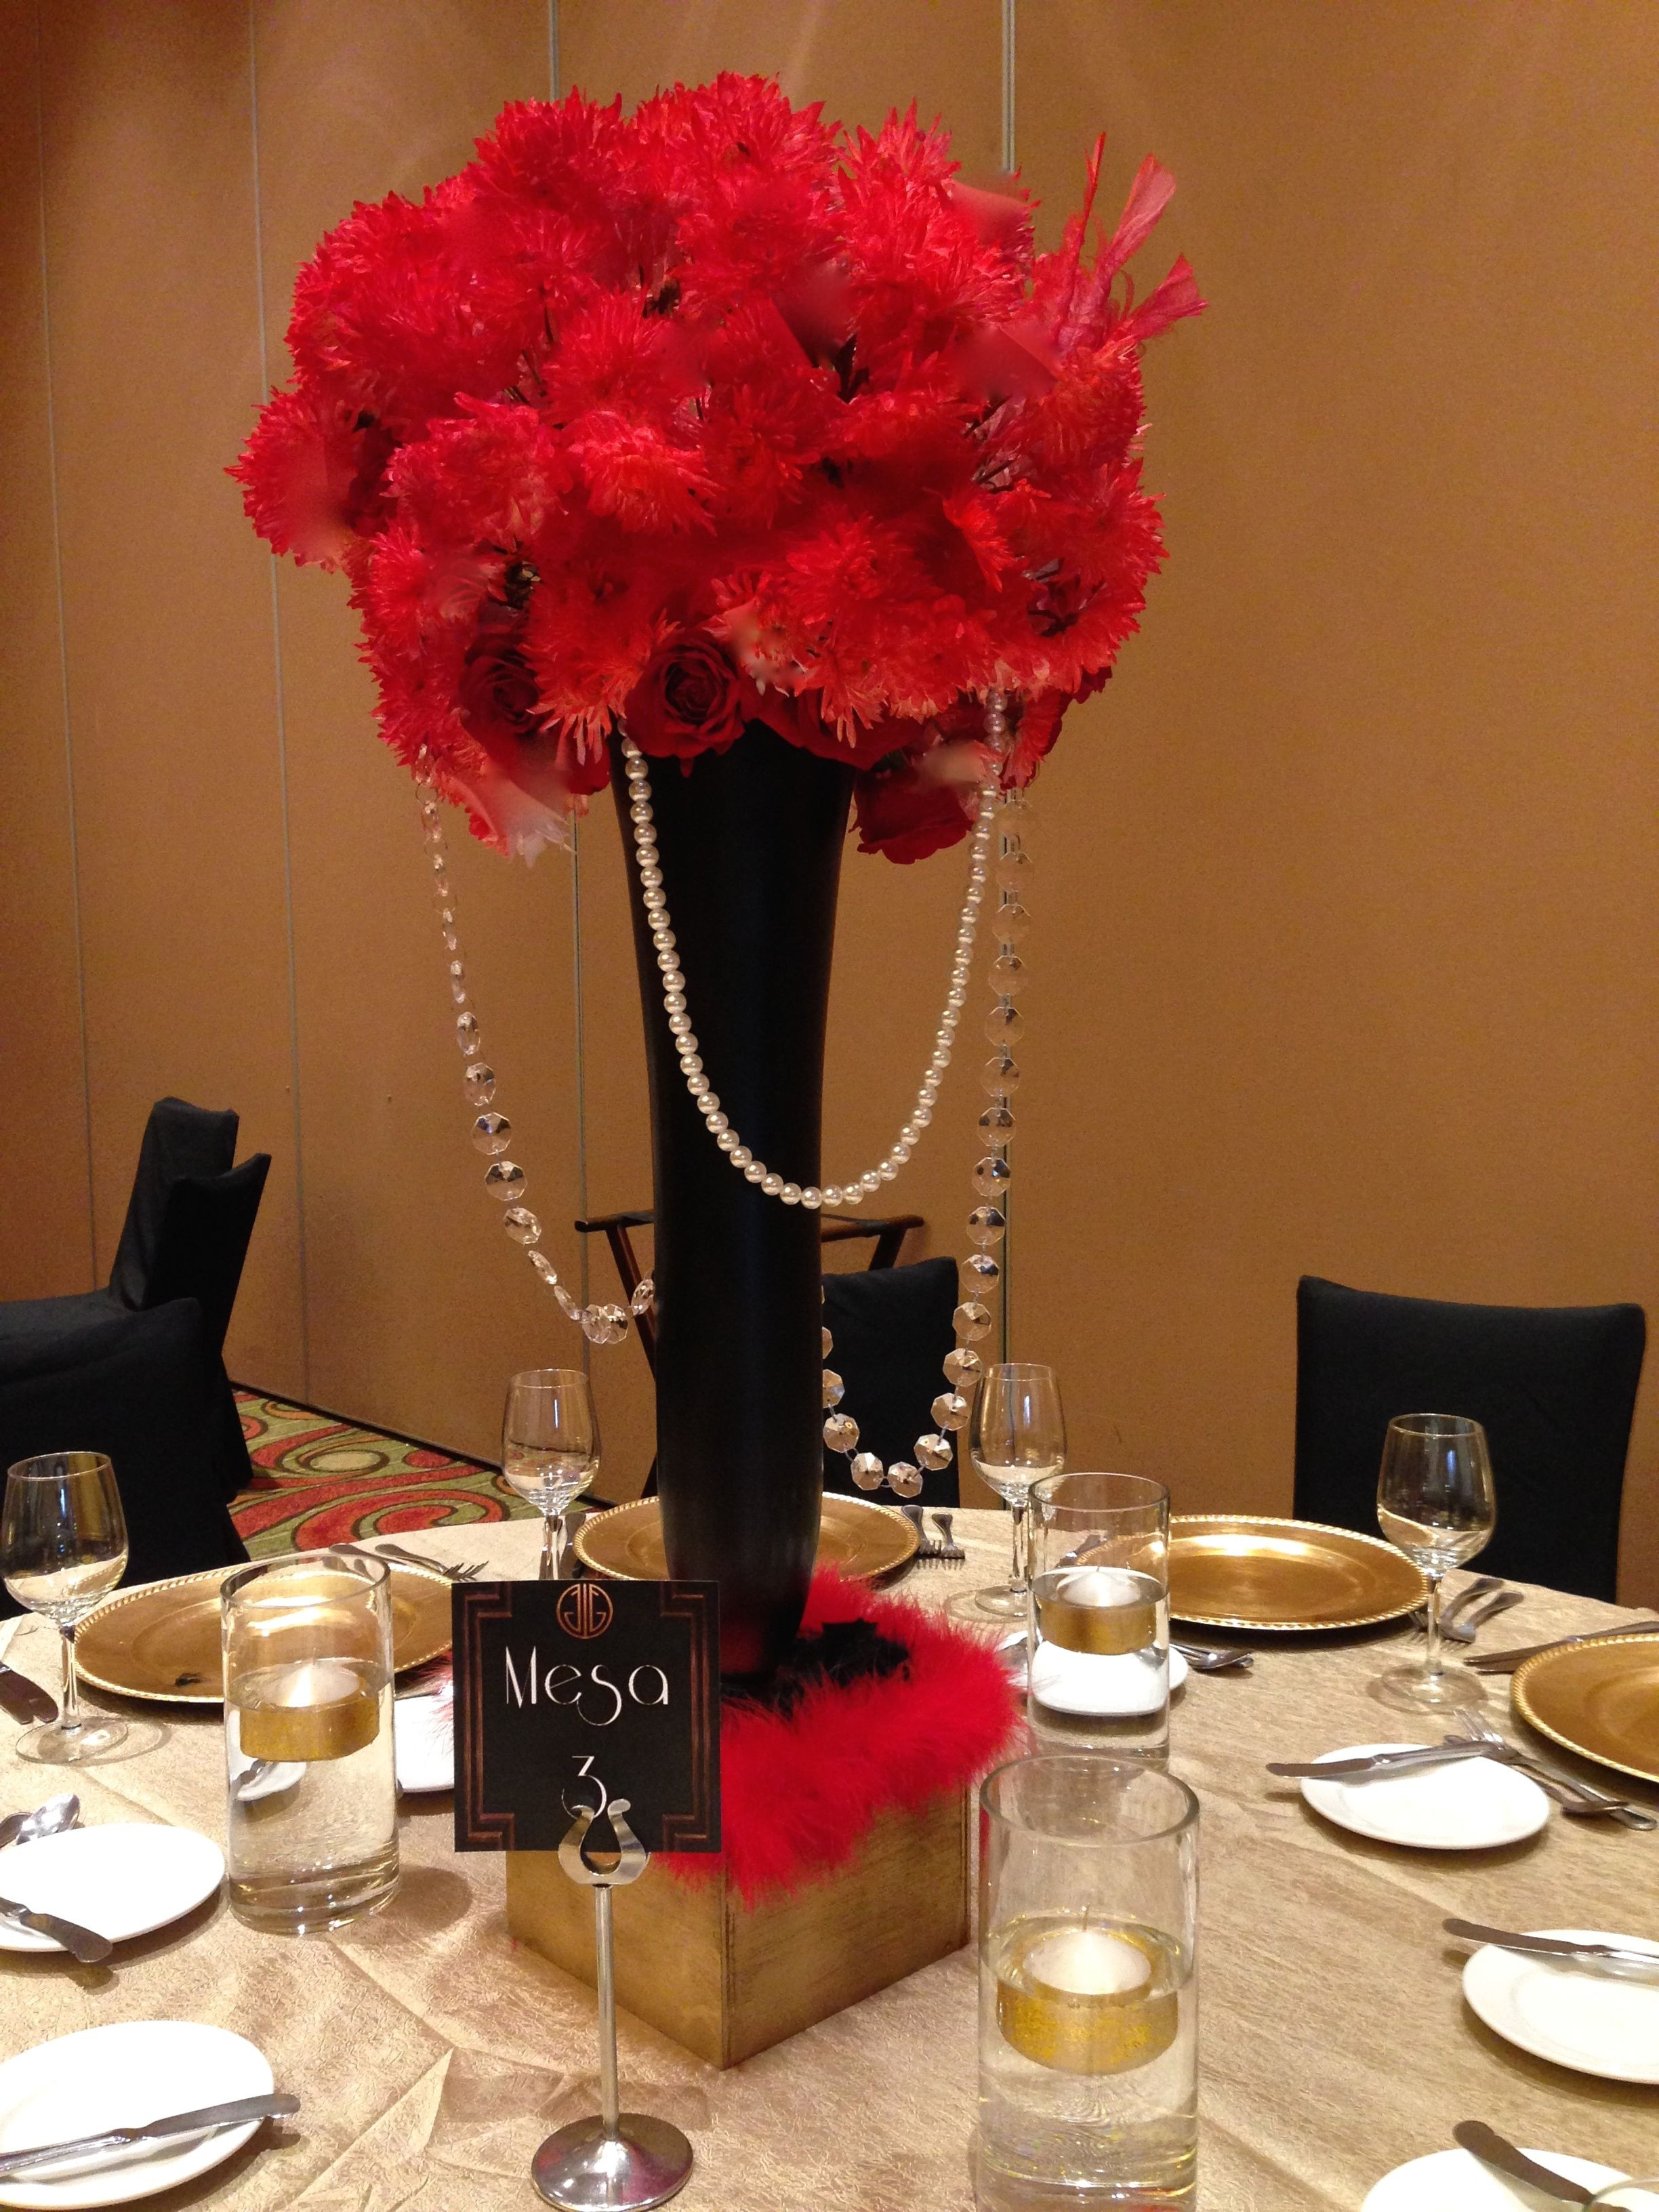 black glass vases centerpieces of tall centerpiece red roses and black vases great gatsby theme with regard to tall centerpiece red roses and black vases great gatsby theme